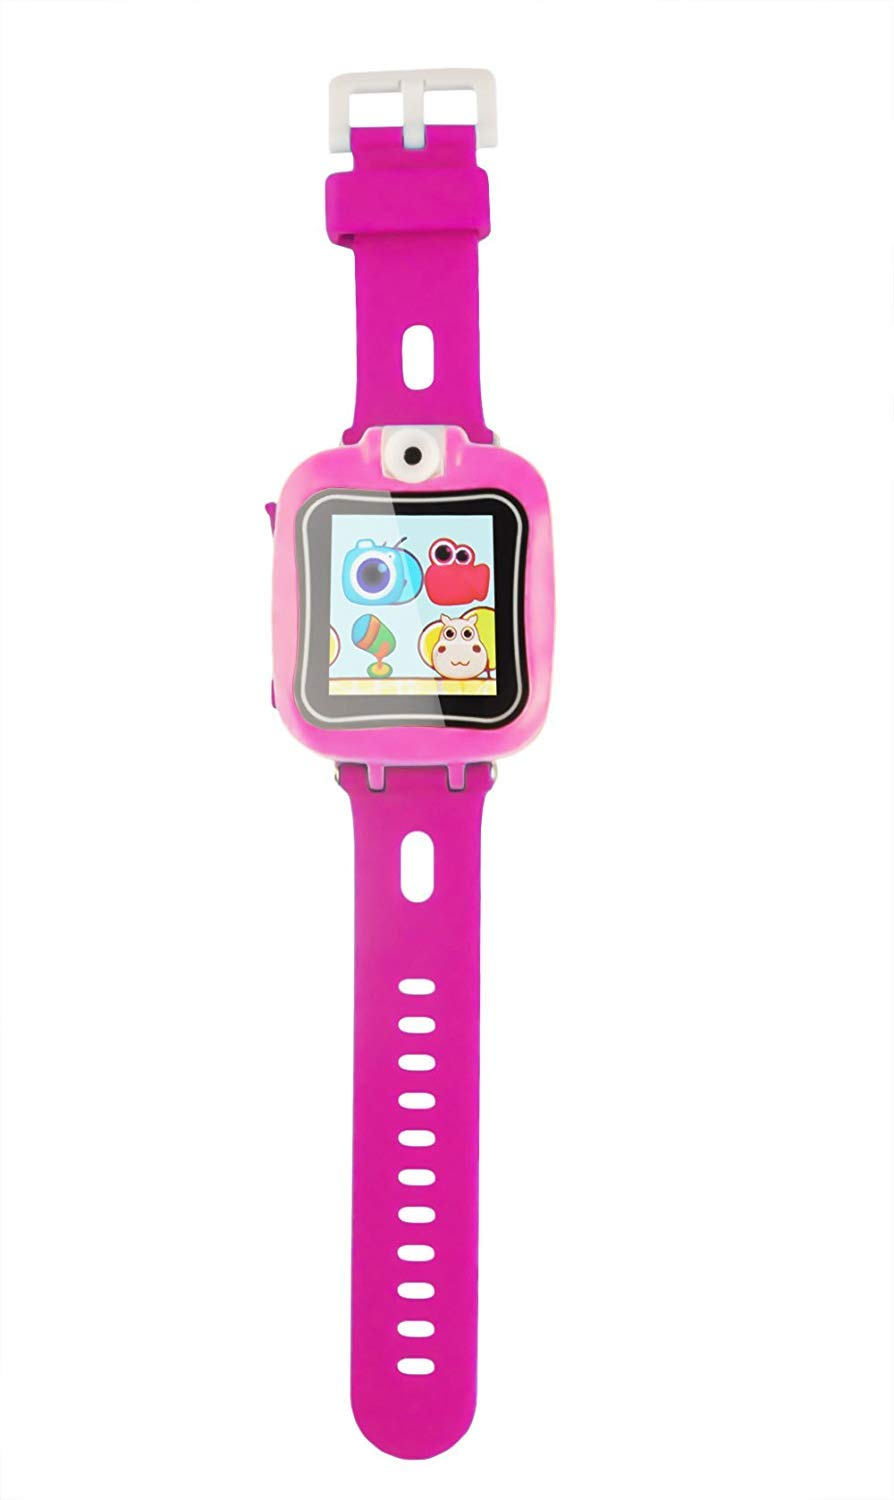 IREALIST Kids Smartwatch, Touchscreen Smart Watch with 90°Rotating Camera, Support Take Photos, Play Games, Video/Sound Recording,Timer, Alarm Clock by IREALIST (Image #3)